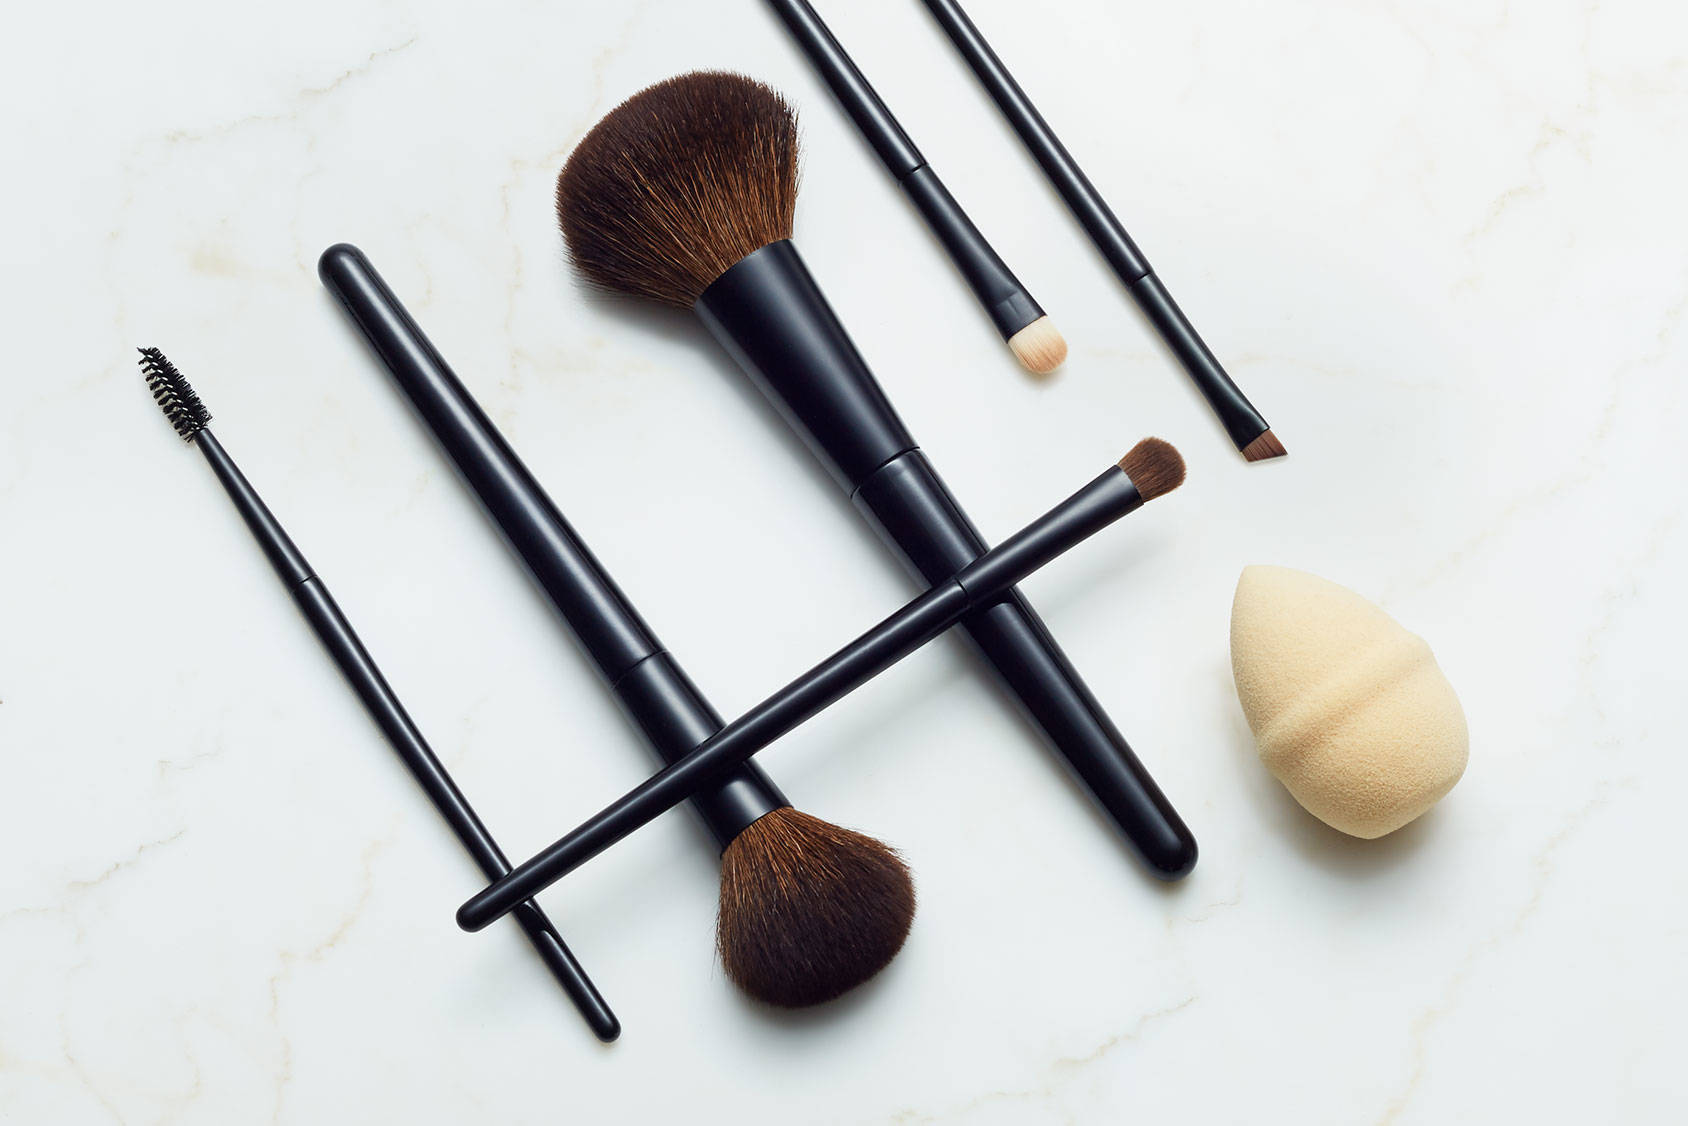 7 essential makeup brushes (and how to use them!)